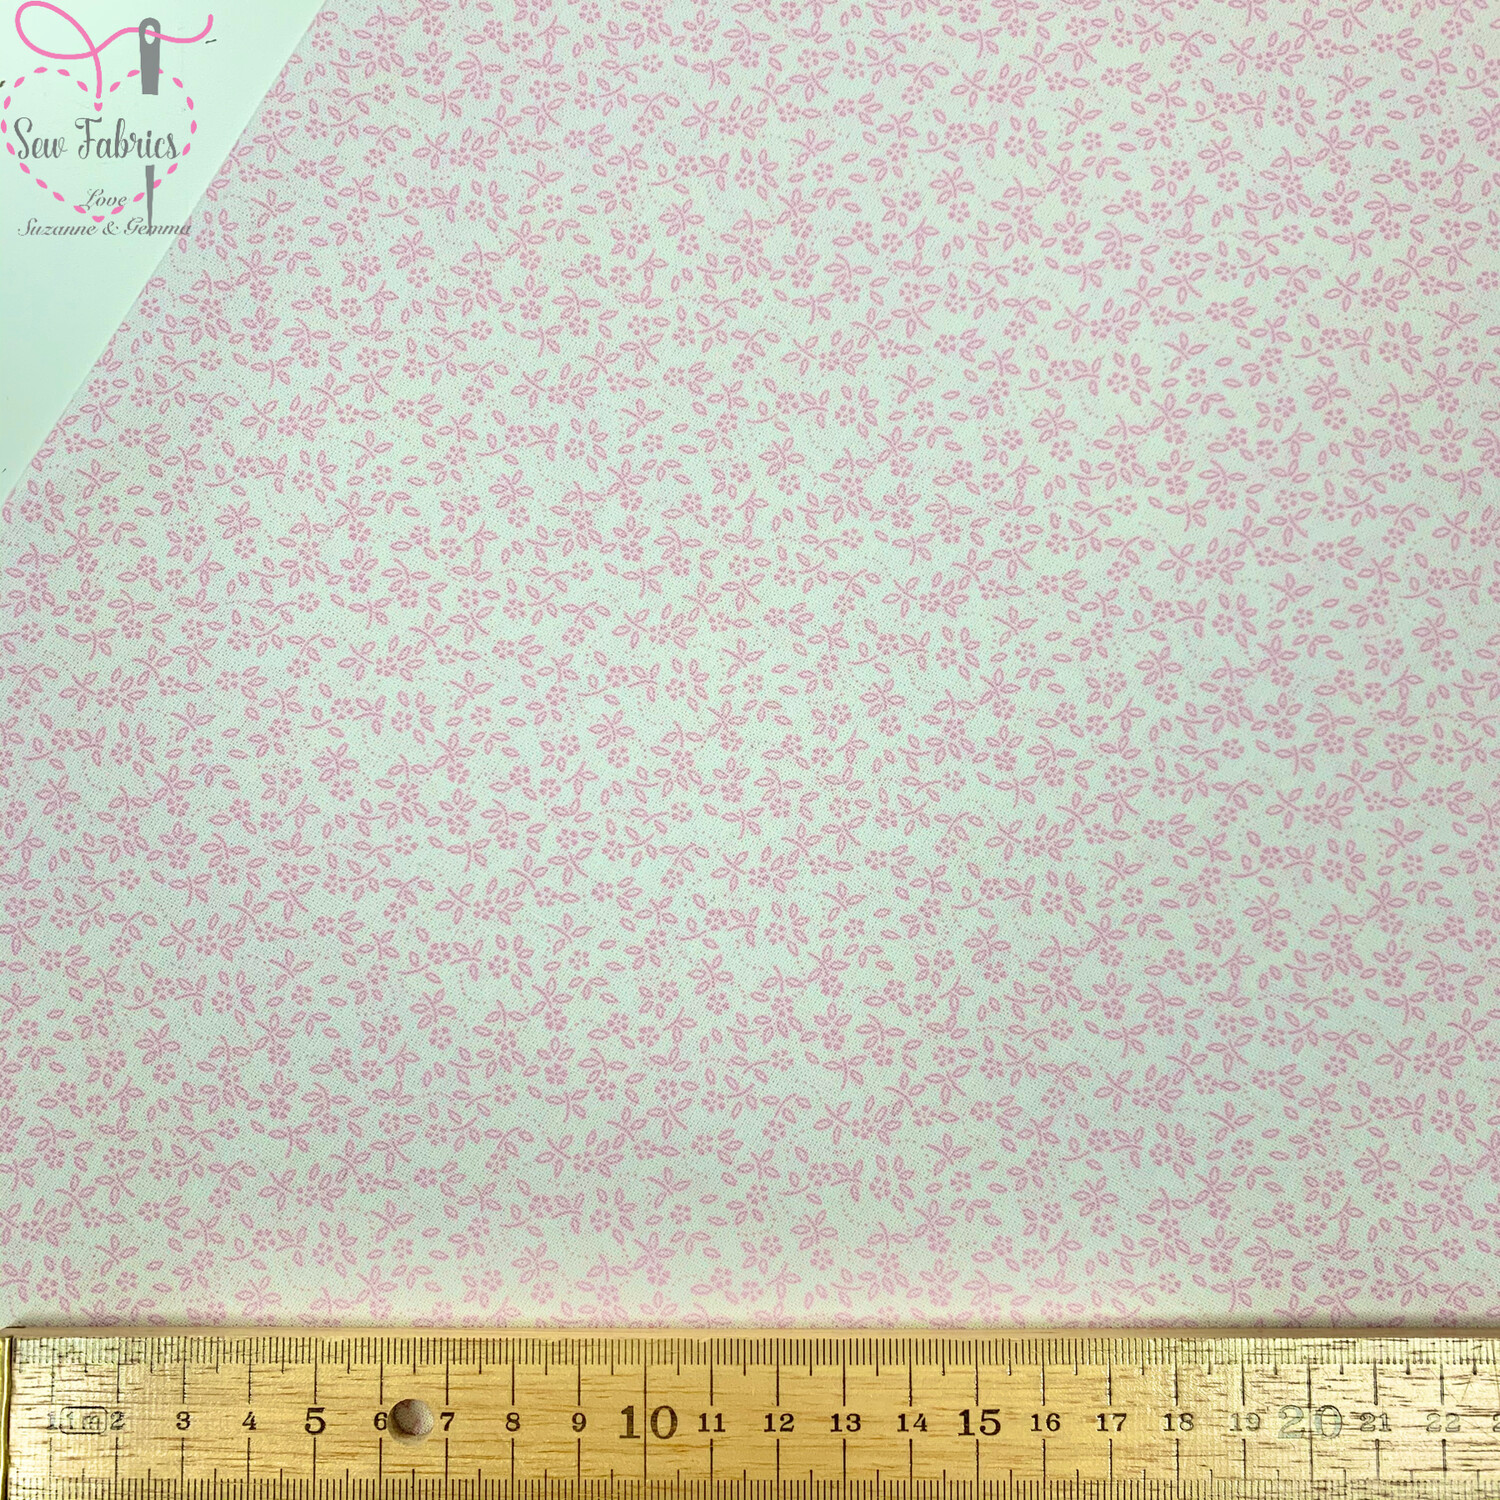 Candy Pink on Ivory Background 100% Craft Cotton Ditsy Daisy Floral Fabric, Suitable for Craft, Quilting & Sewing Projects.